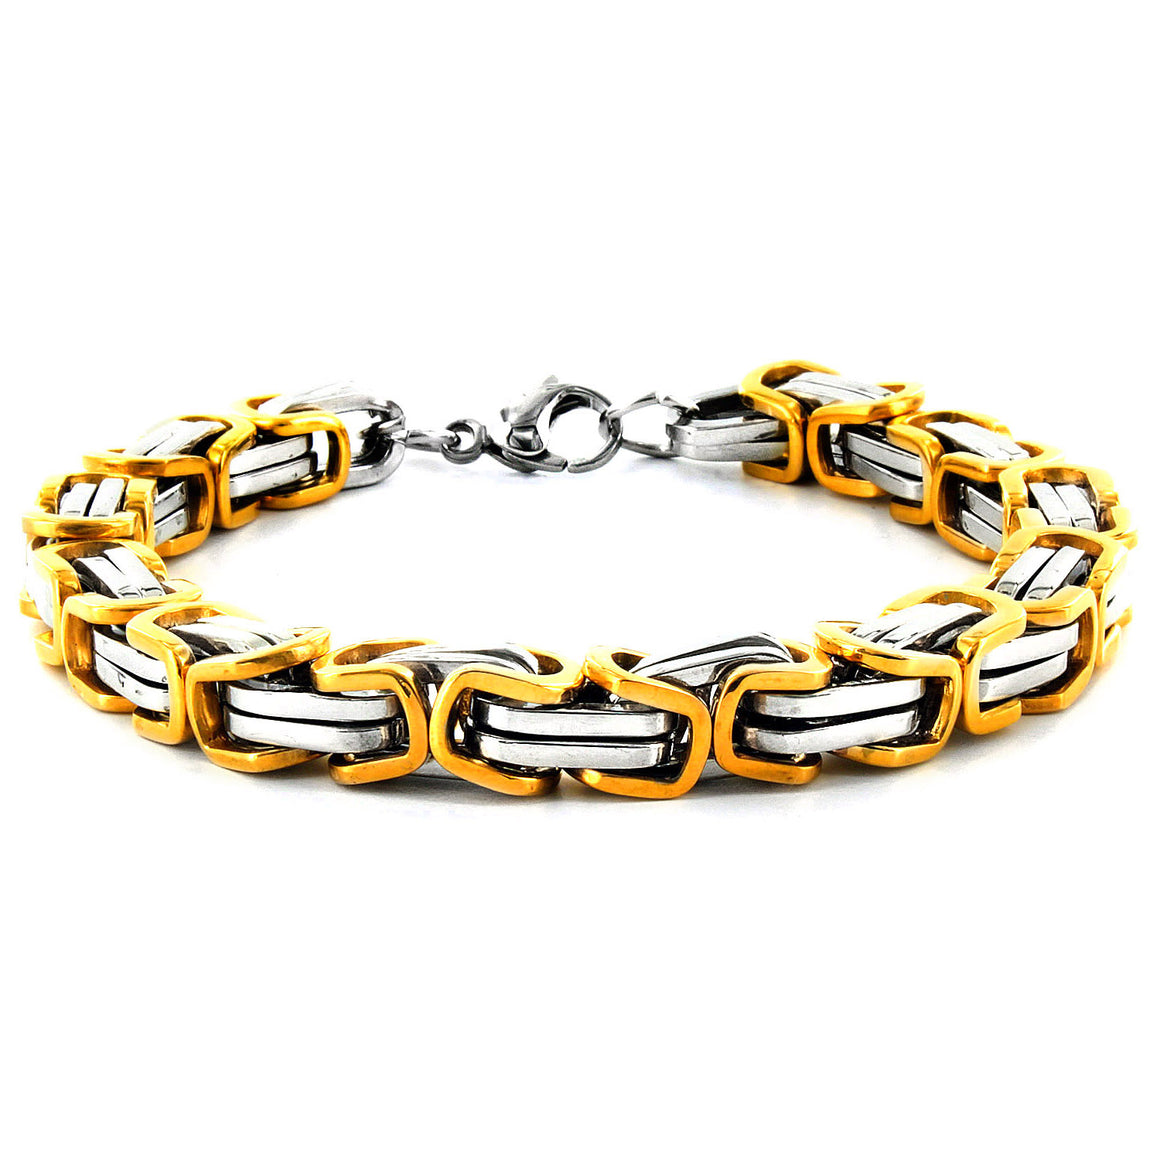 Crucible Men's Stainless Steel Polished Byzantine Chain Link Bracelet